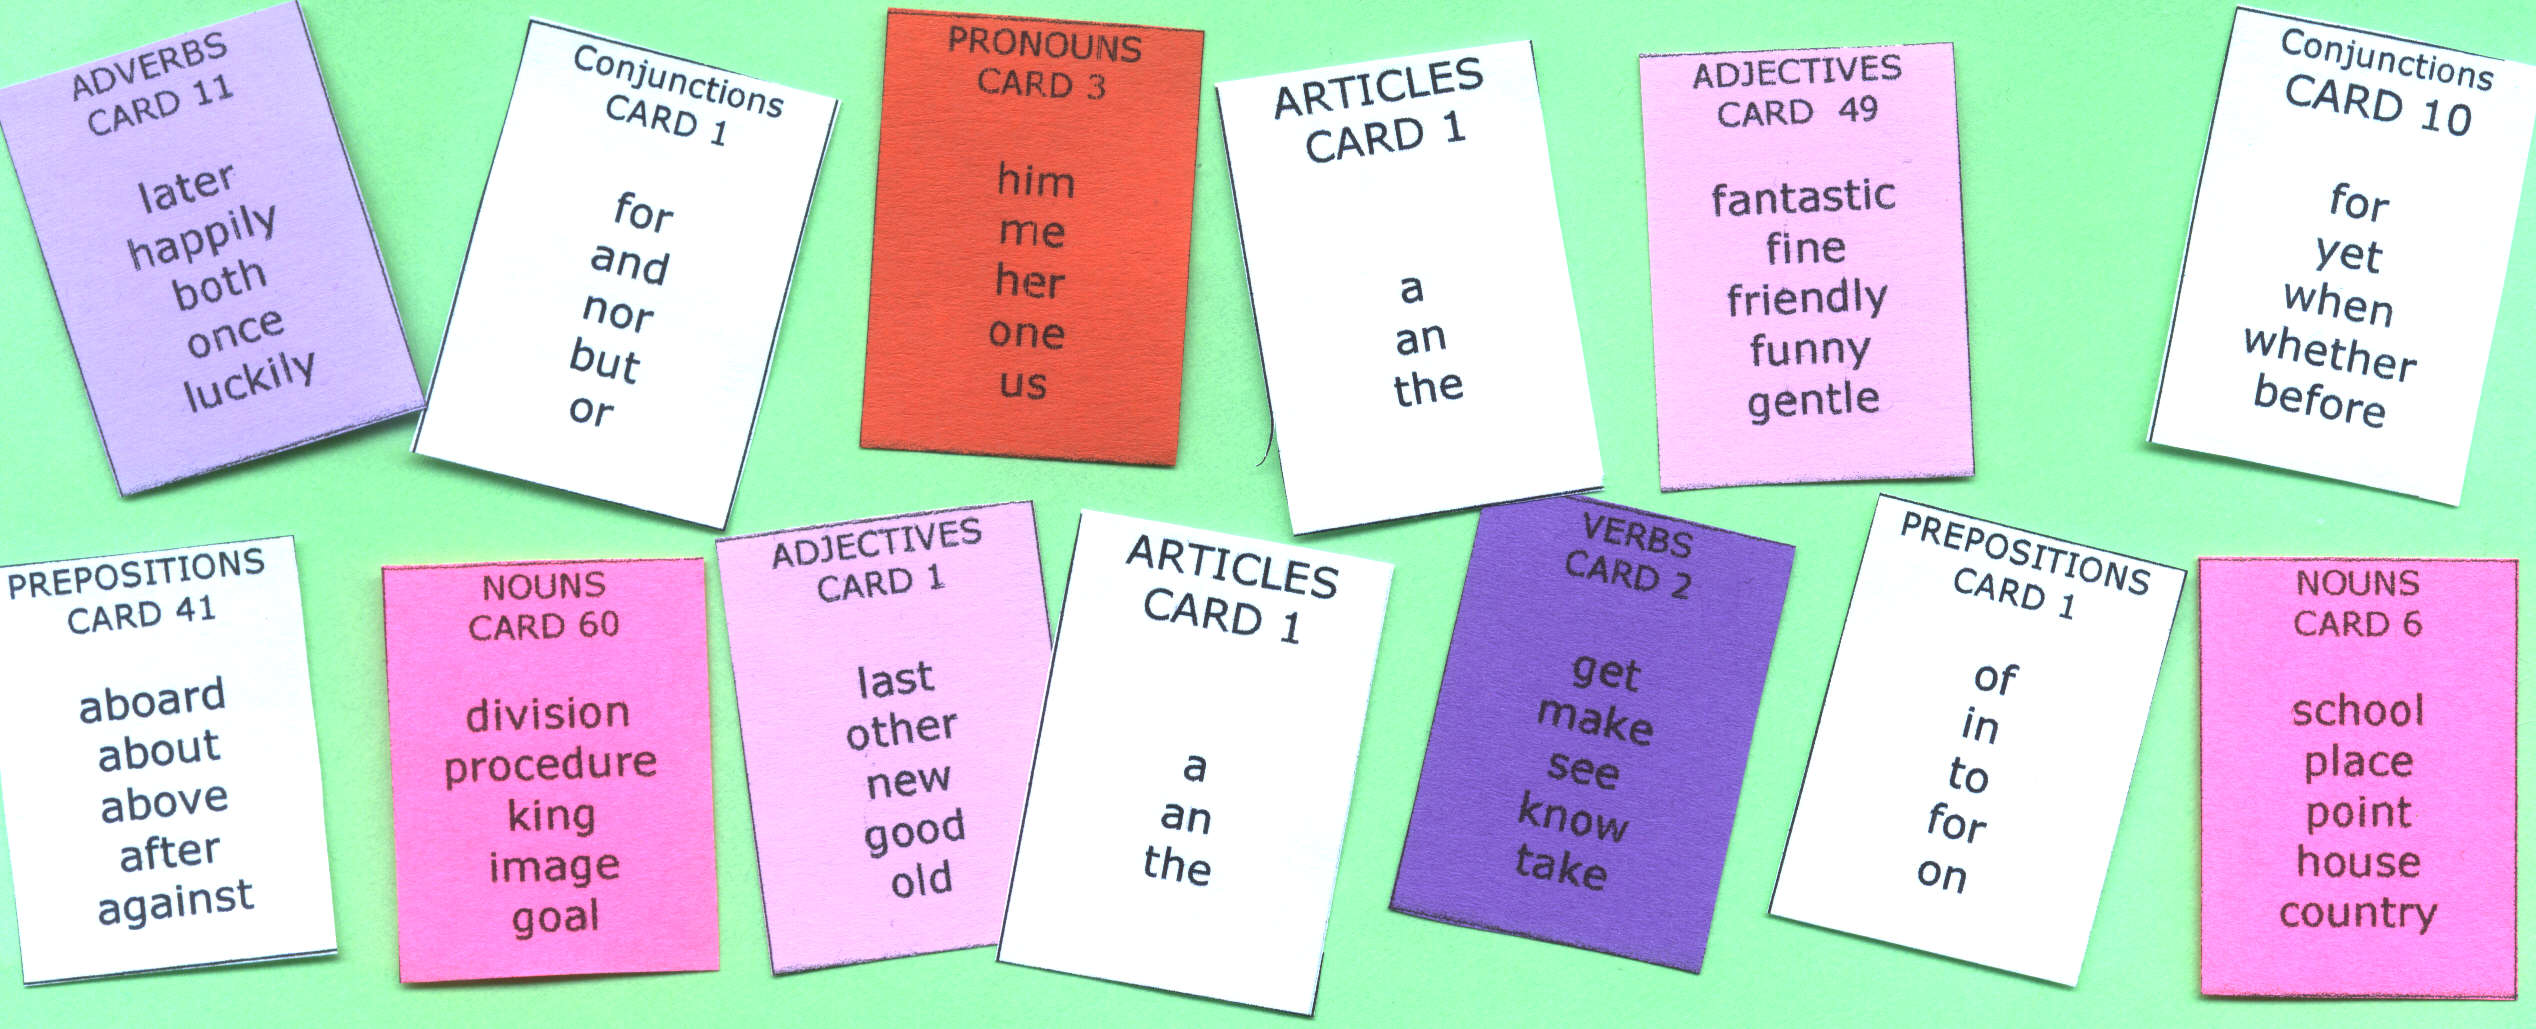 Picture of the 13 Sentence Master Practice Word cards for challenge 1 to practice specific  English language sentence construction skills, phrases, clauses and complete sentences